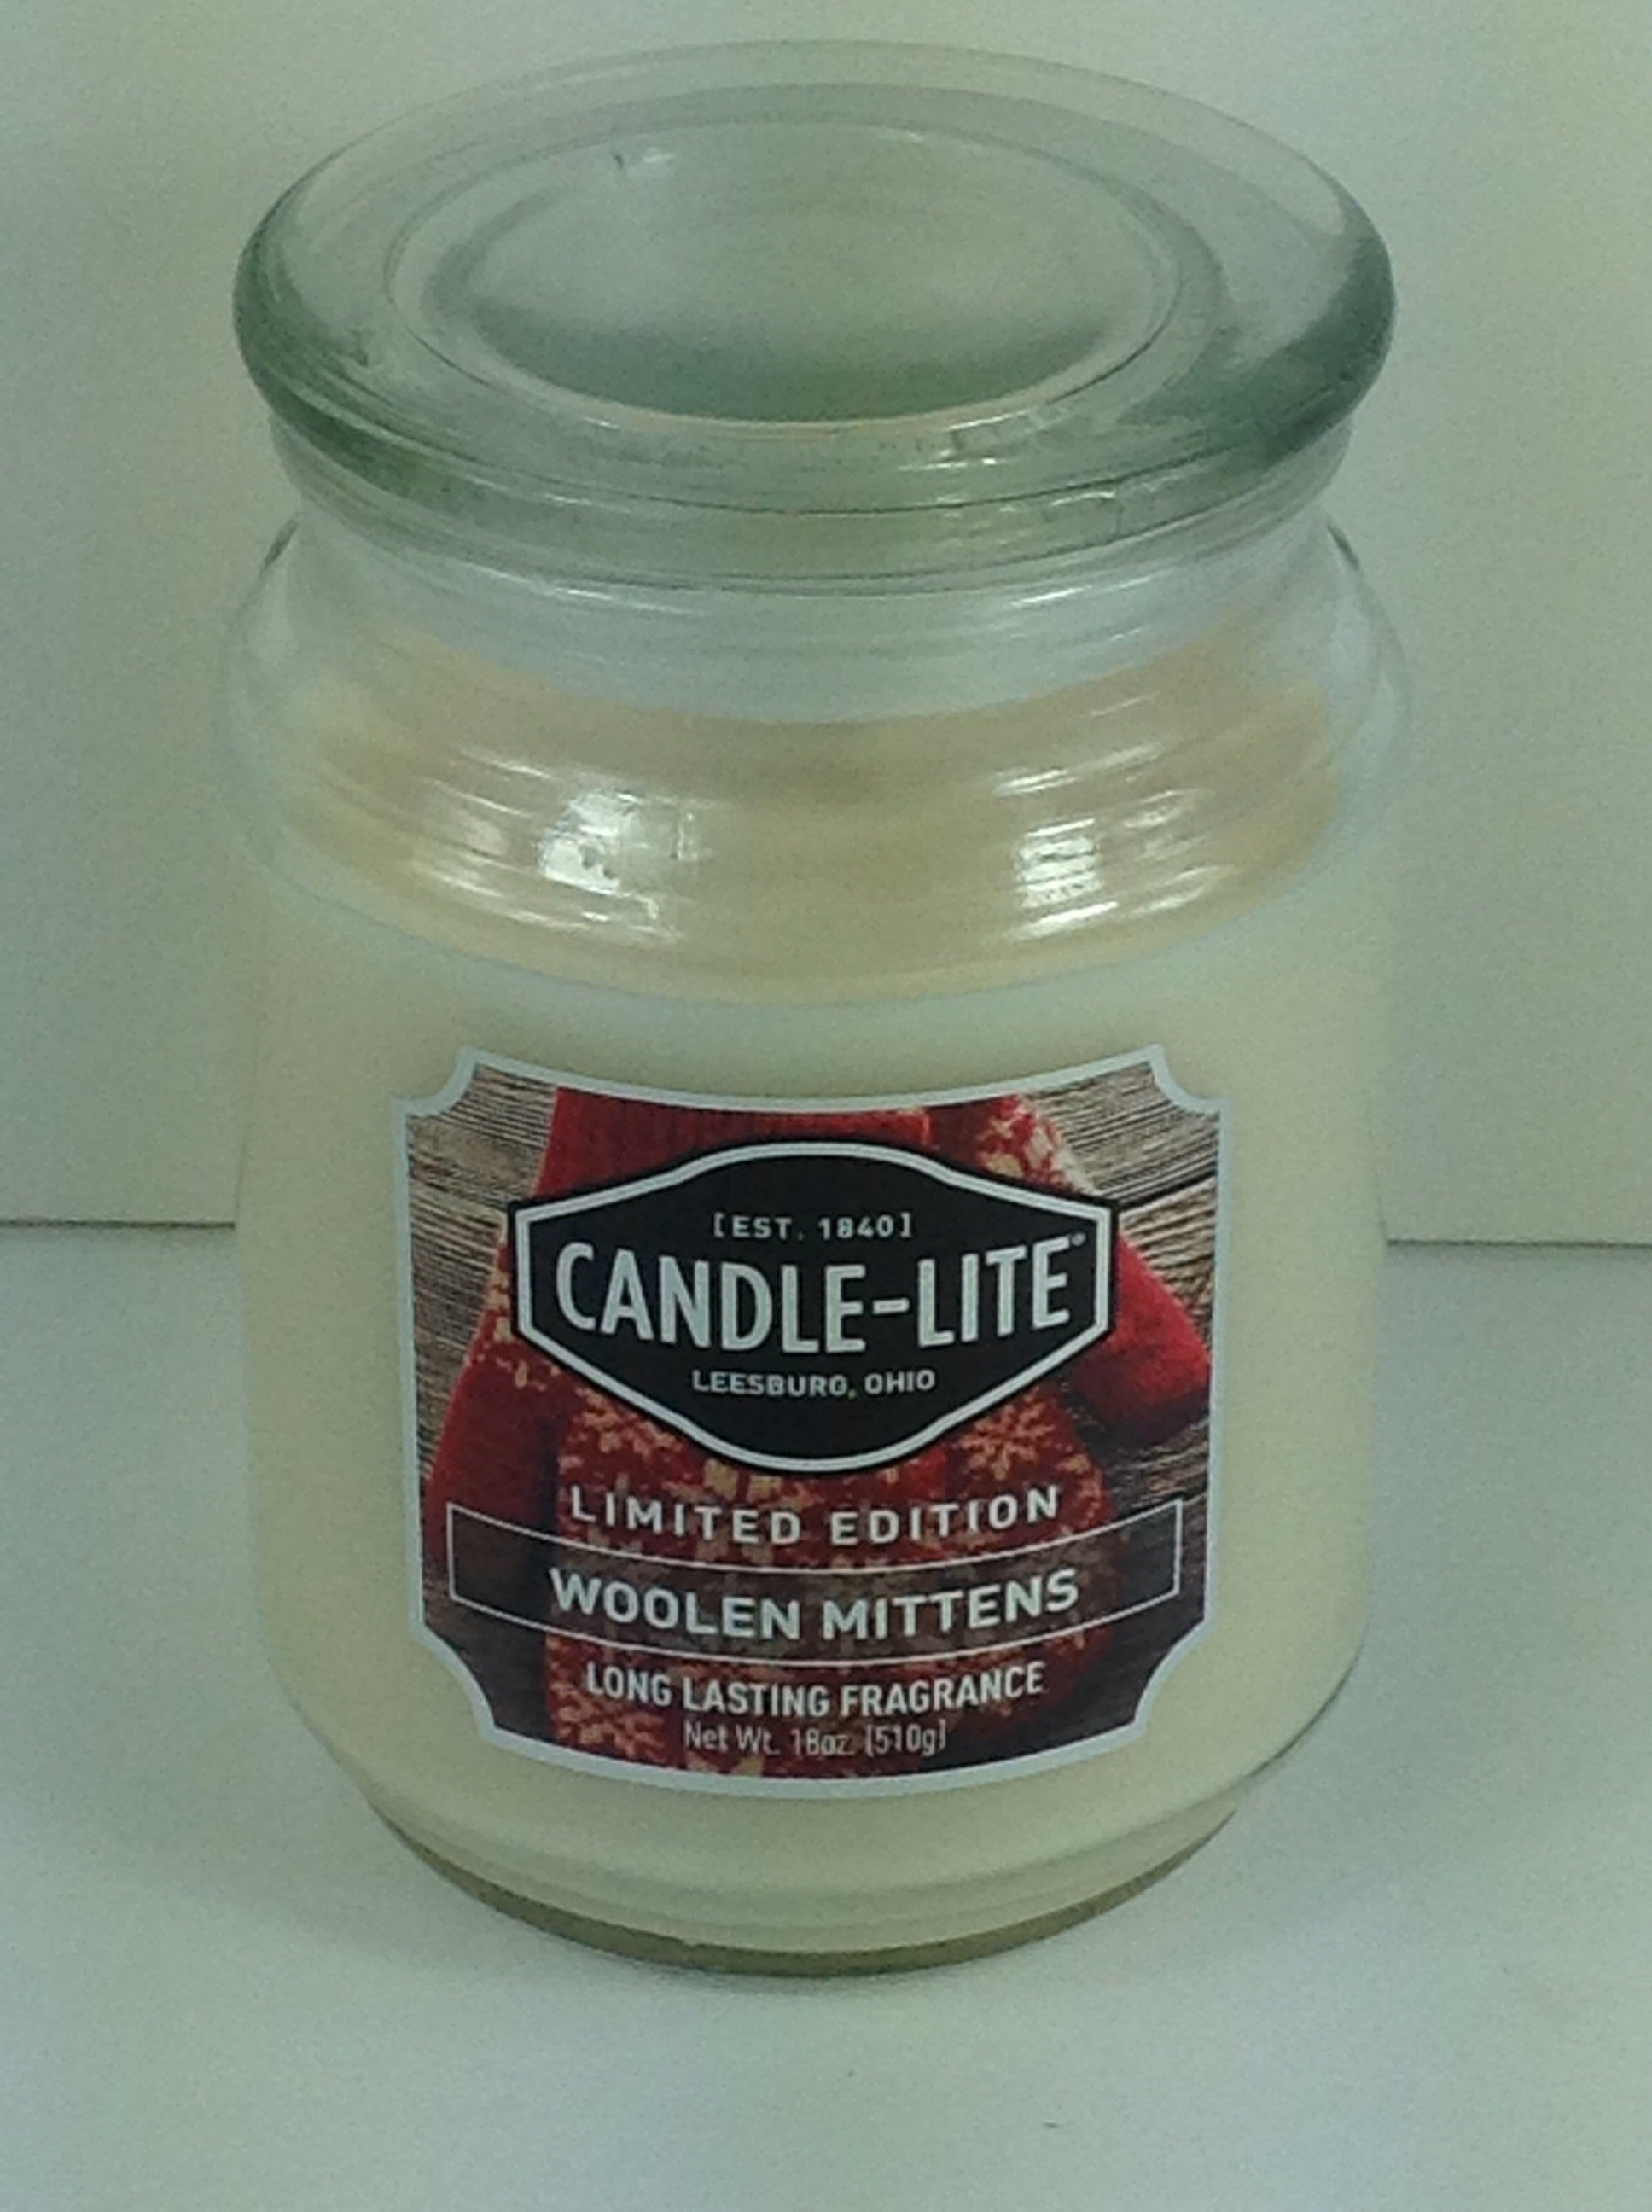 CANDLE-LITE LIMITED EDITION WOOLEN MITTENS 18 OZ LARGE JAR CANDLE